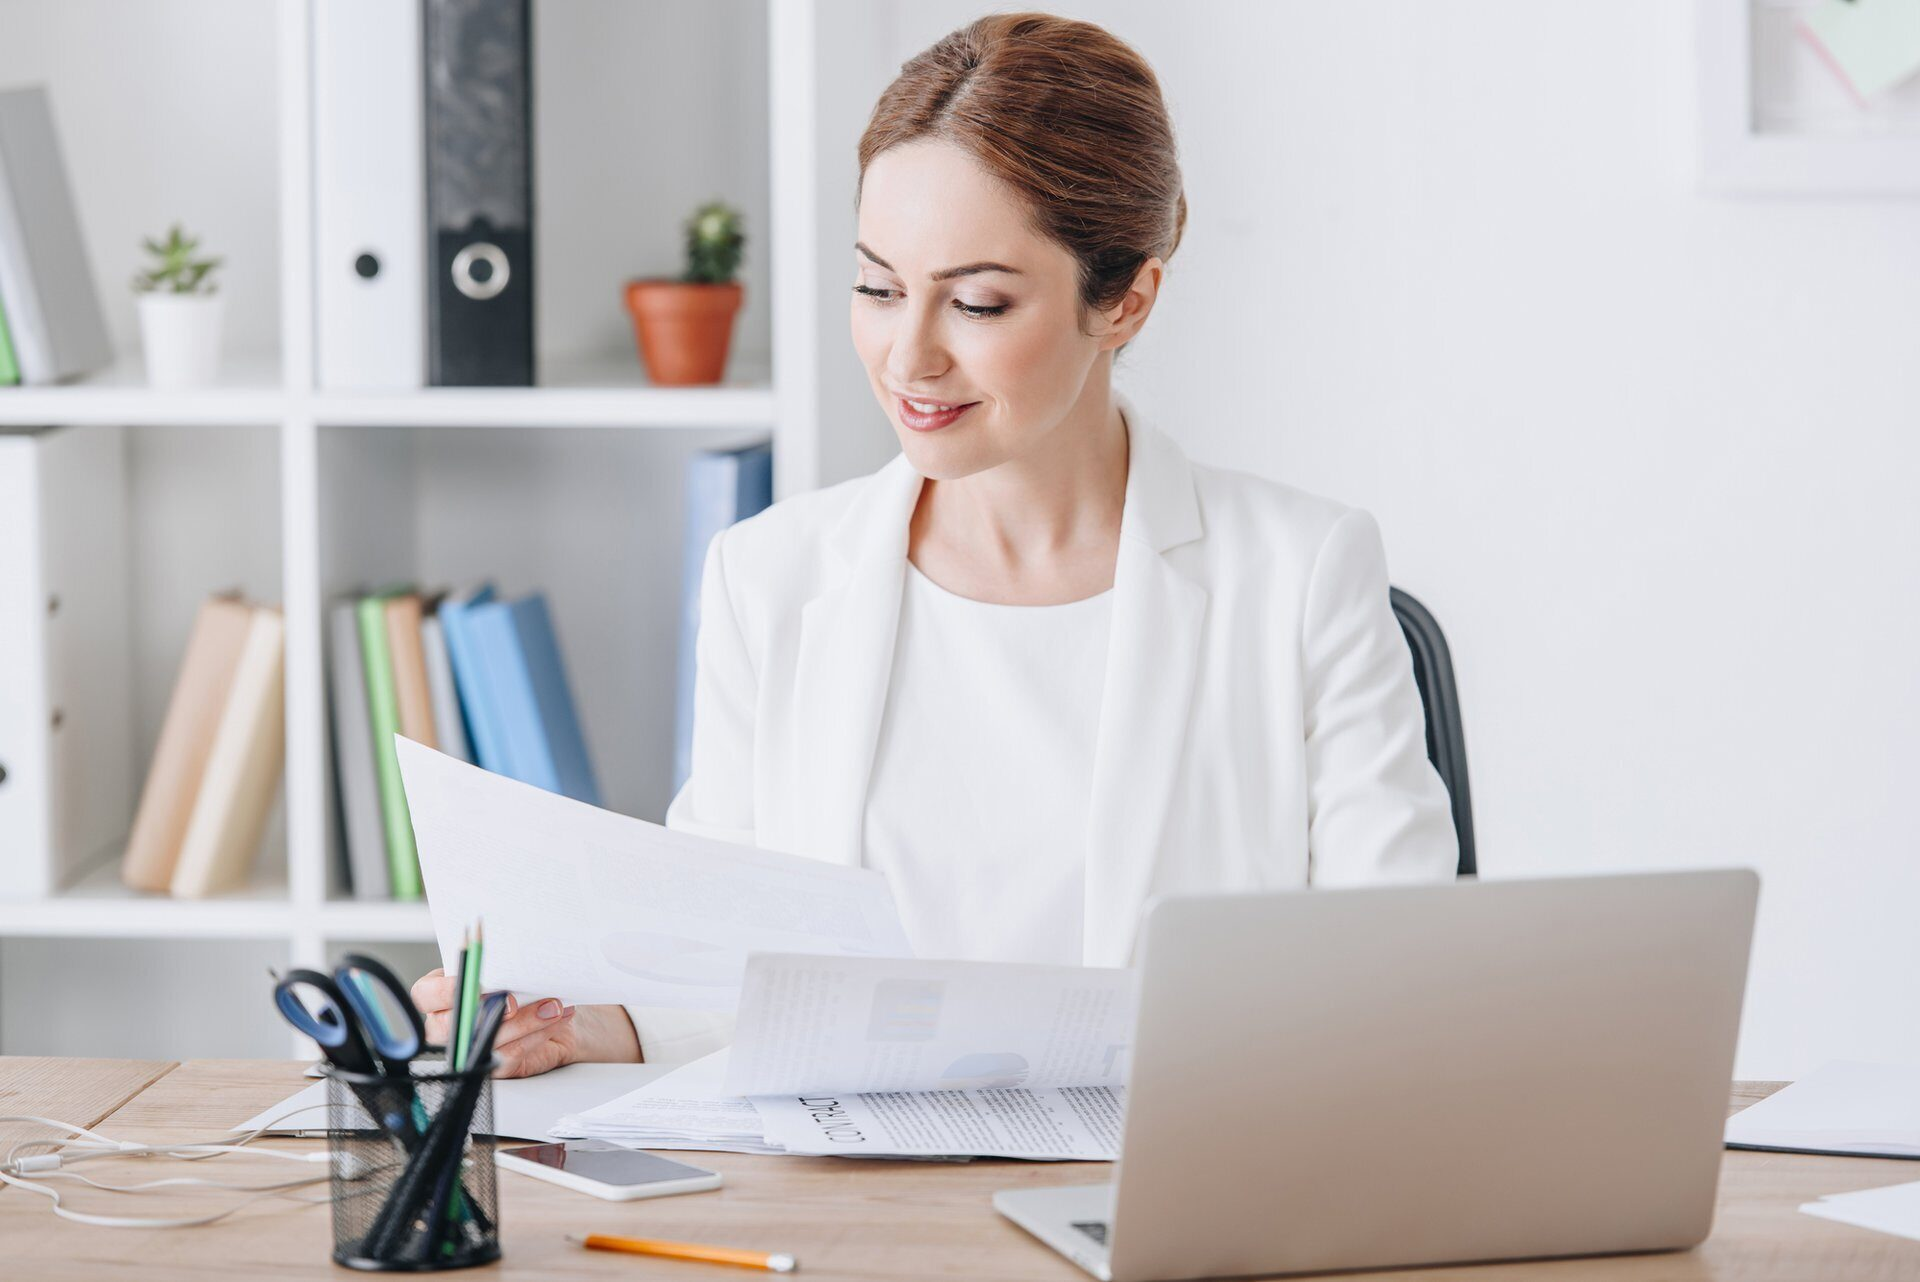 beautiful executive businesswoman working with documents and laptop at workplace in modern office